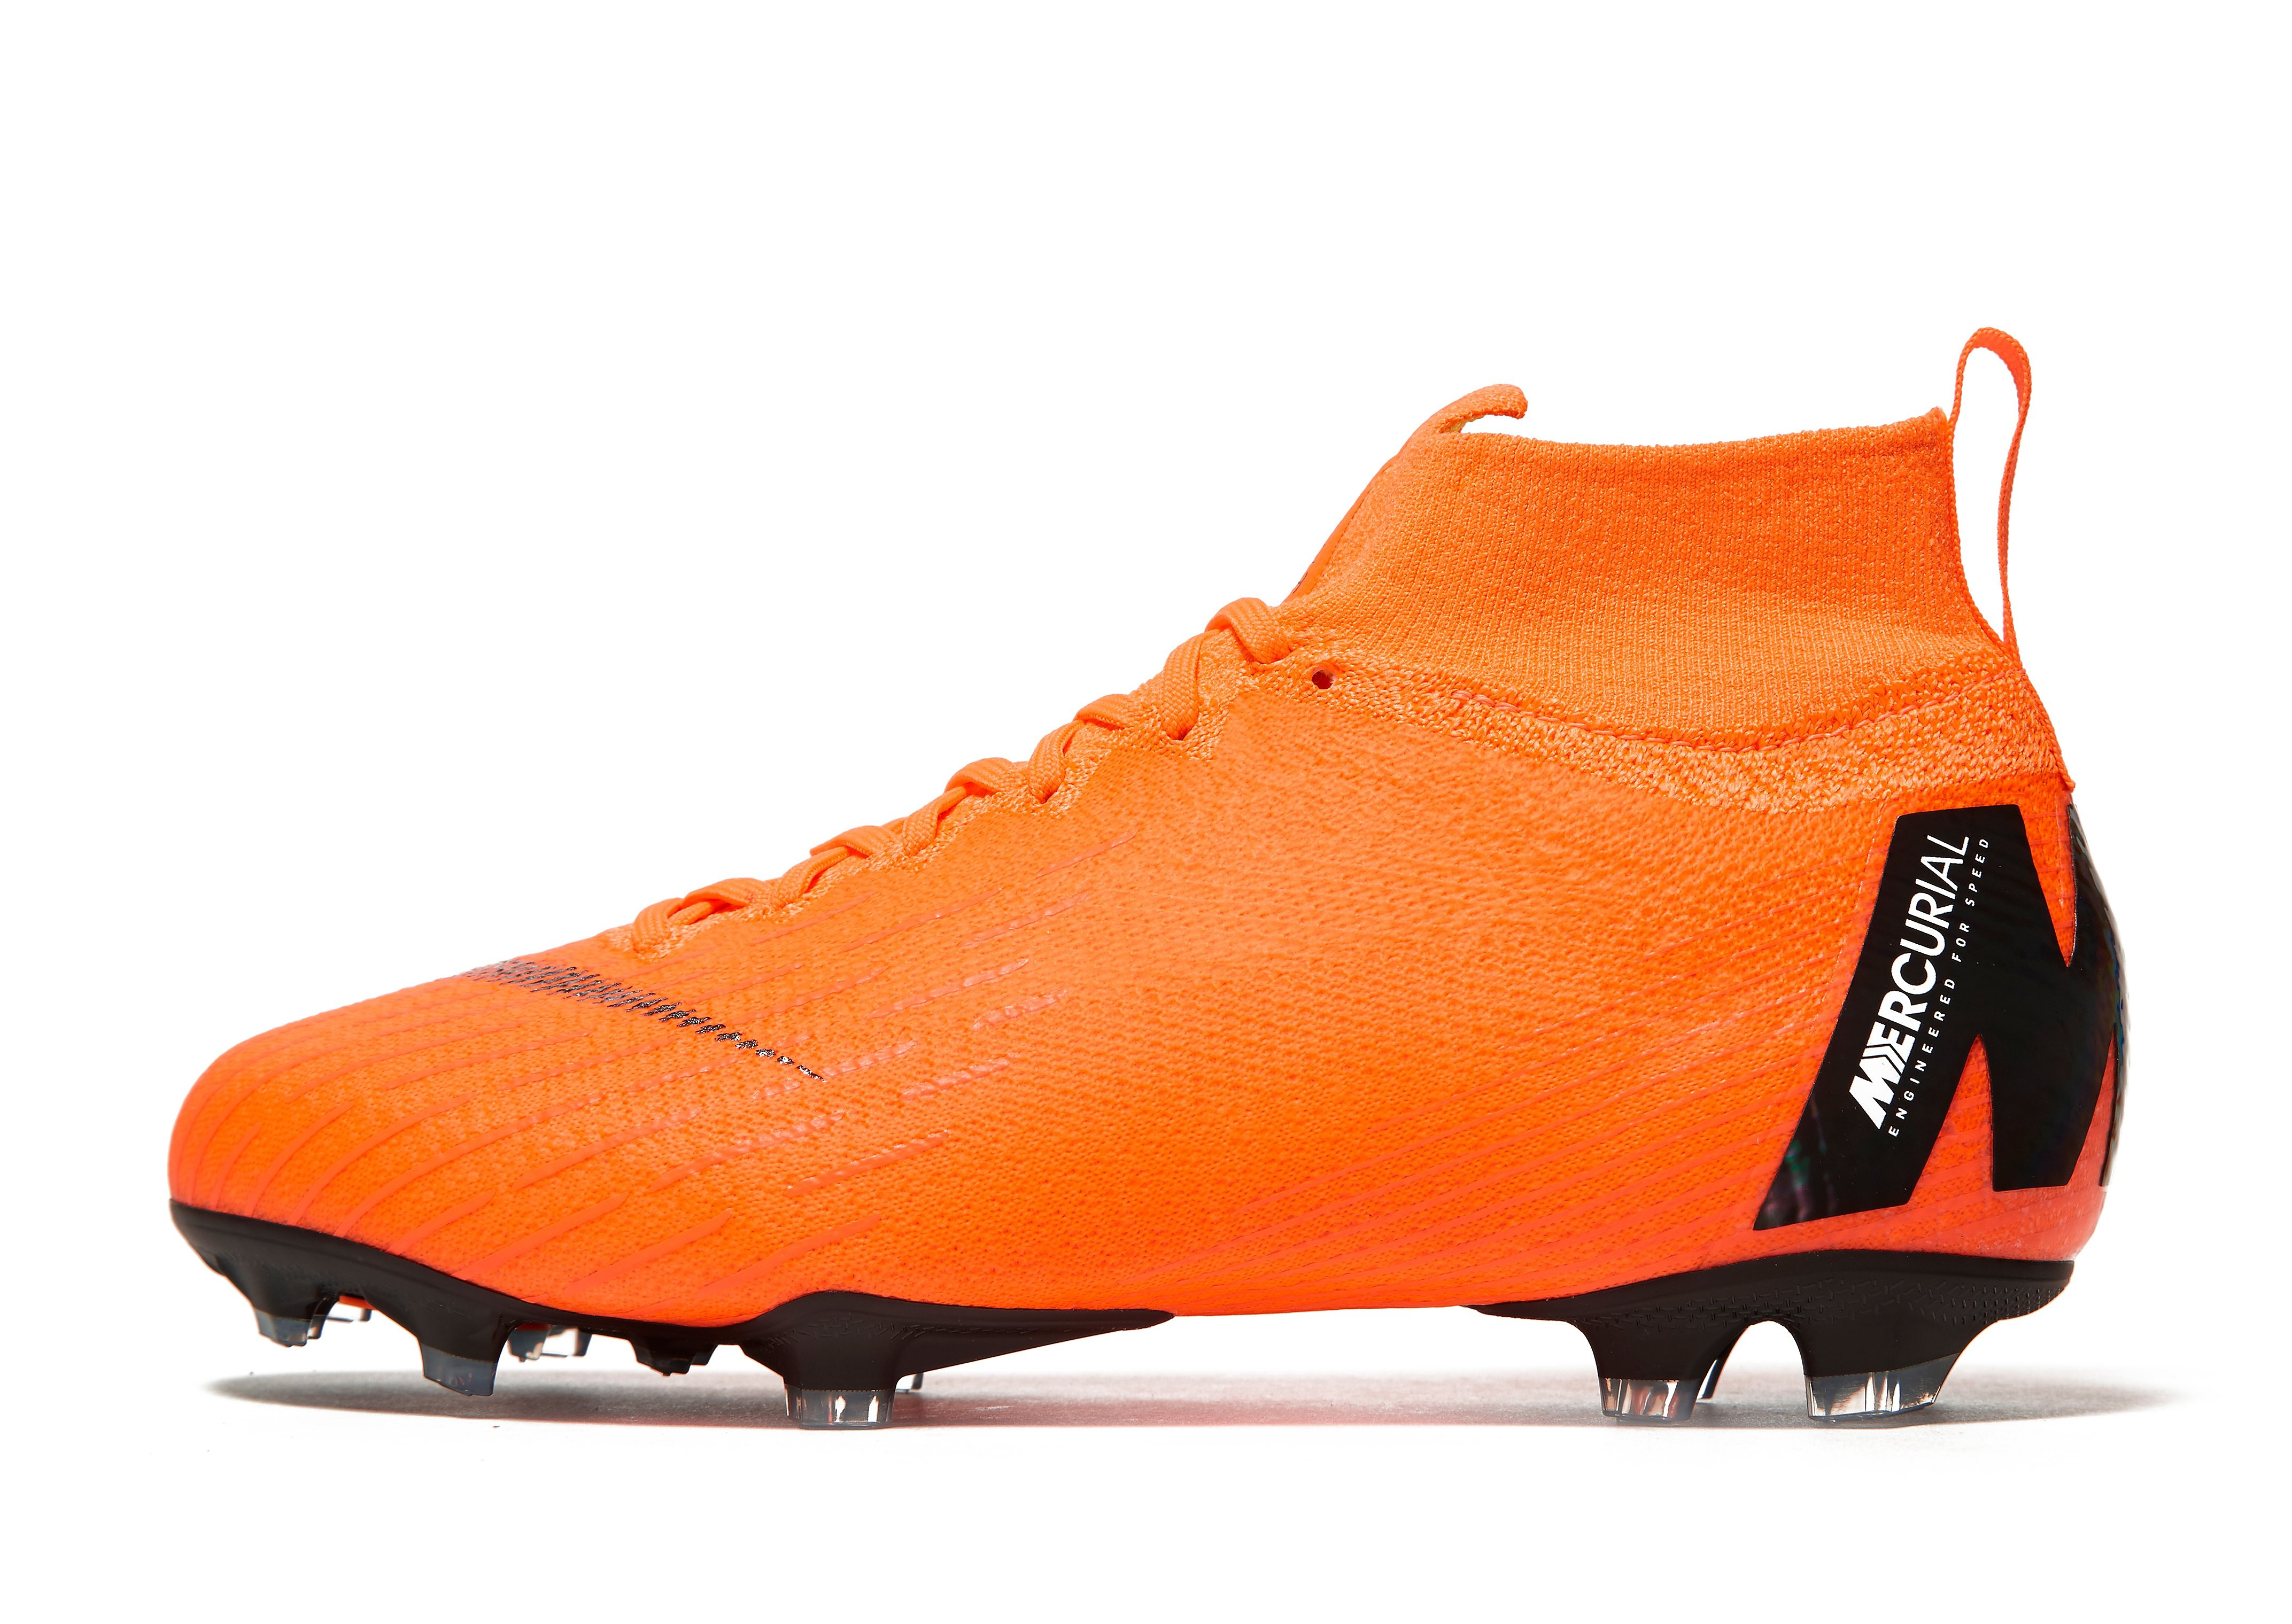 Nike Mercurial 360 Superfly Elite Dynamic Fit FG Junior